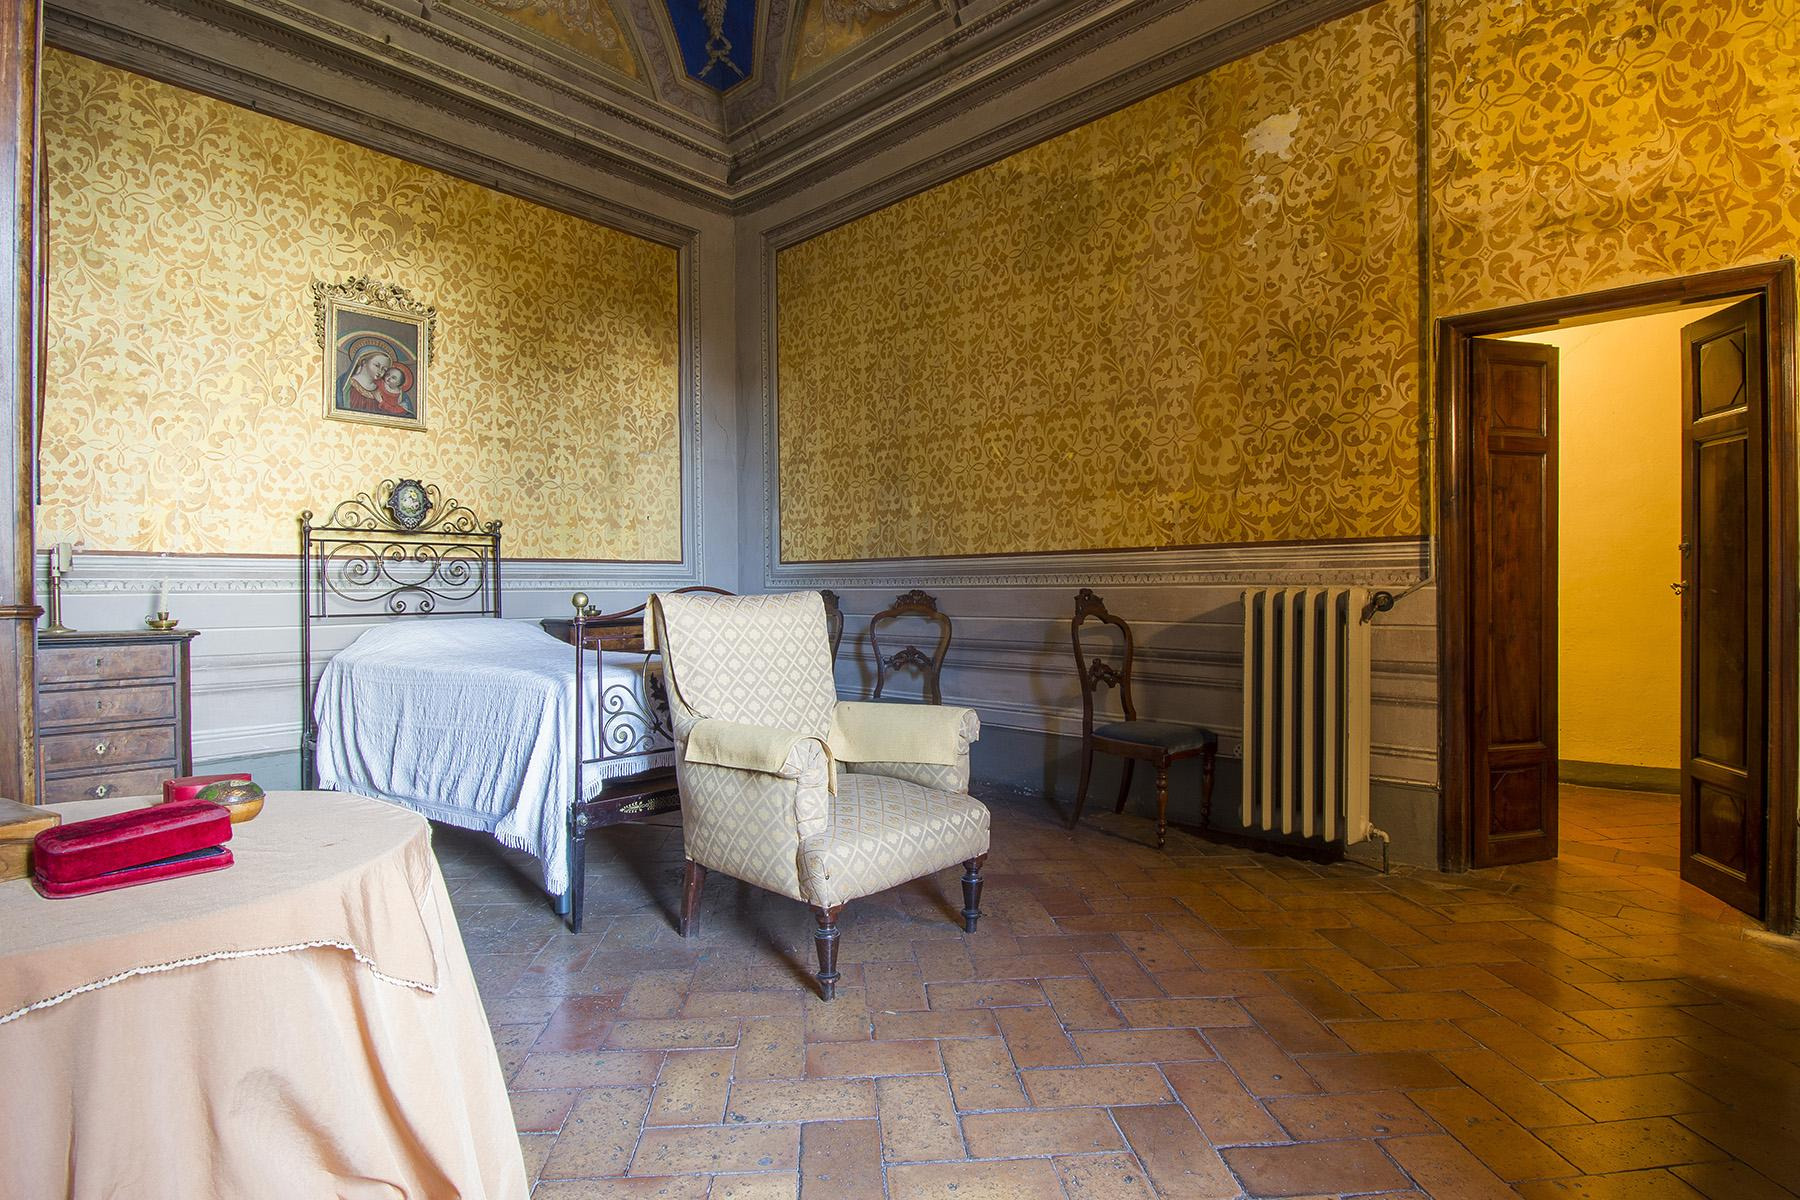 17th-century noble palace in the heart of Volterra - 15